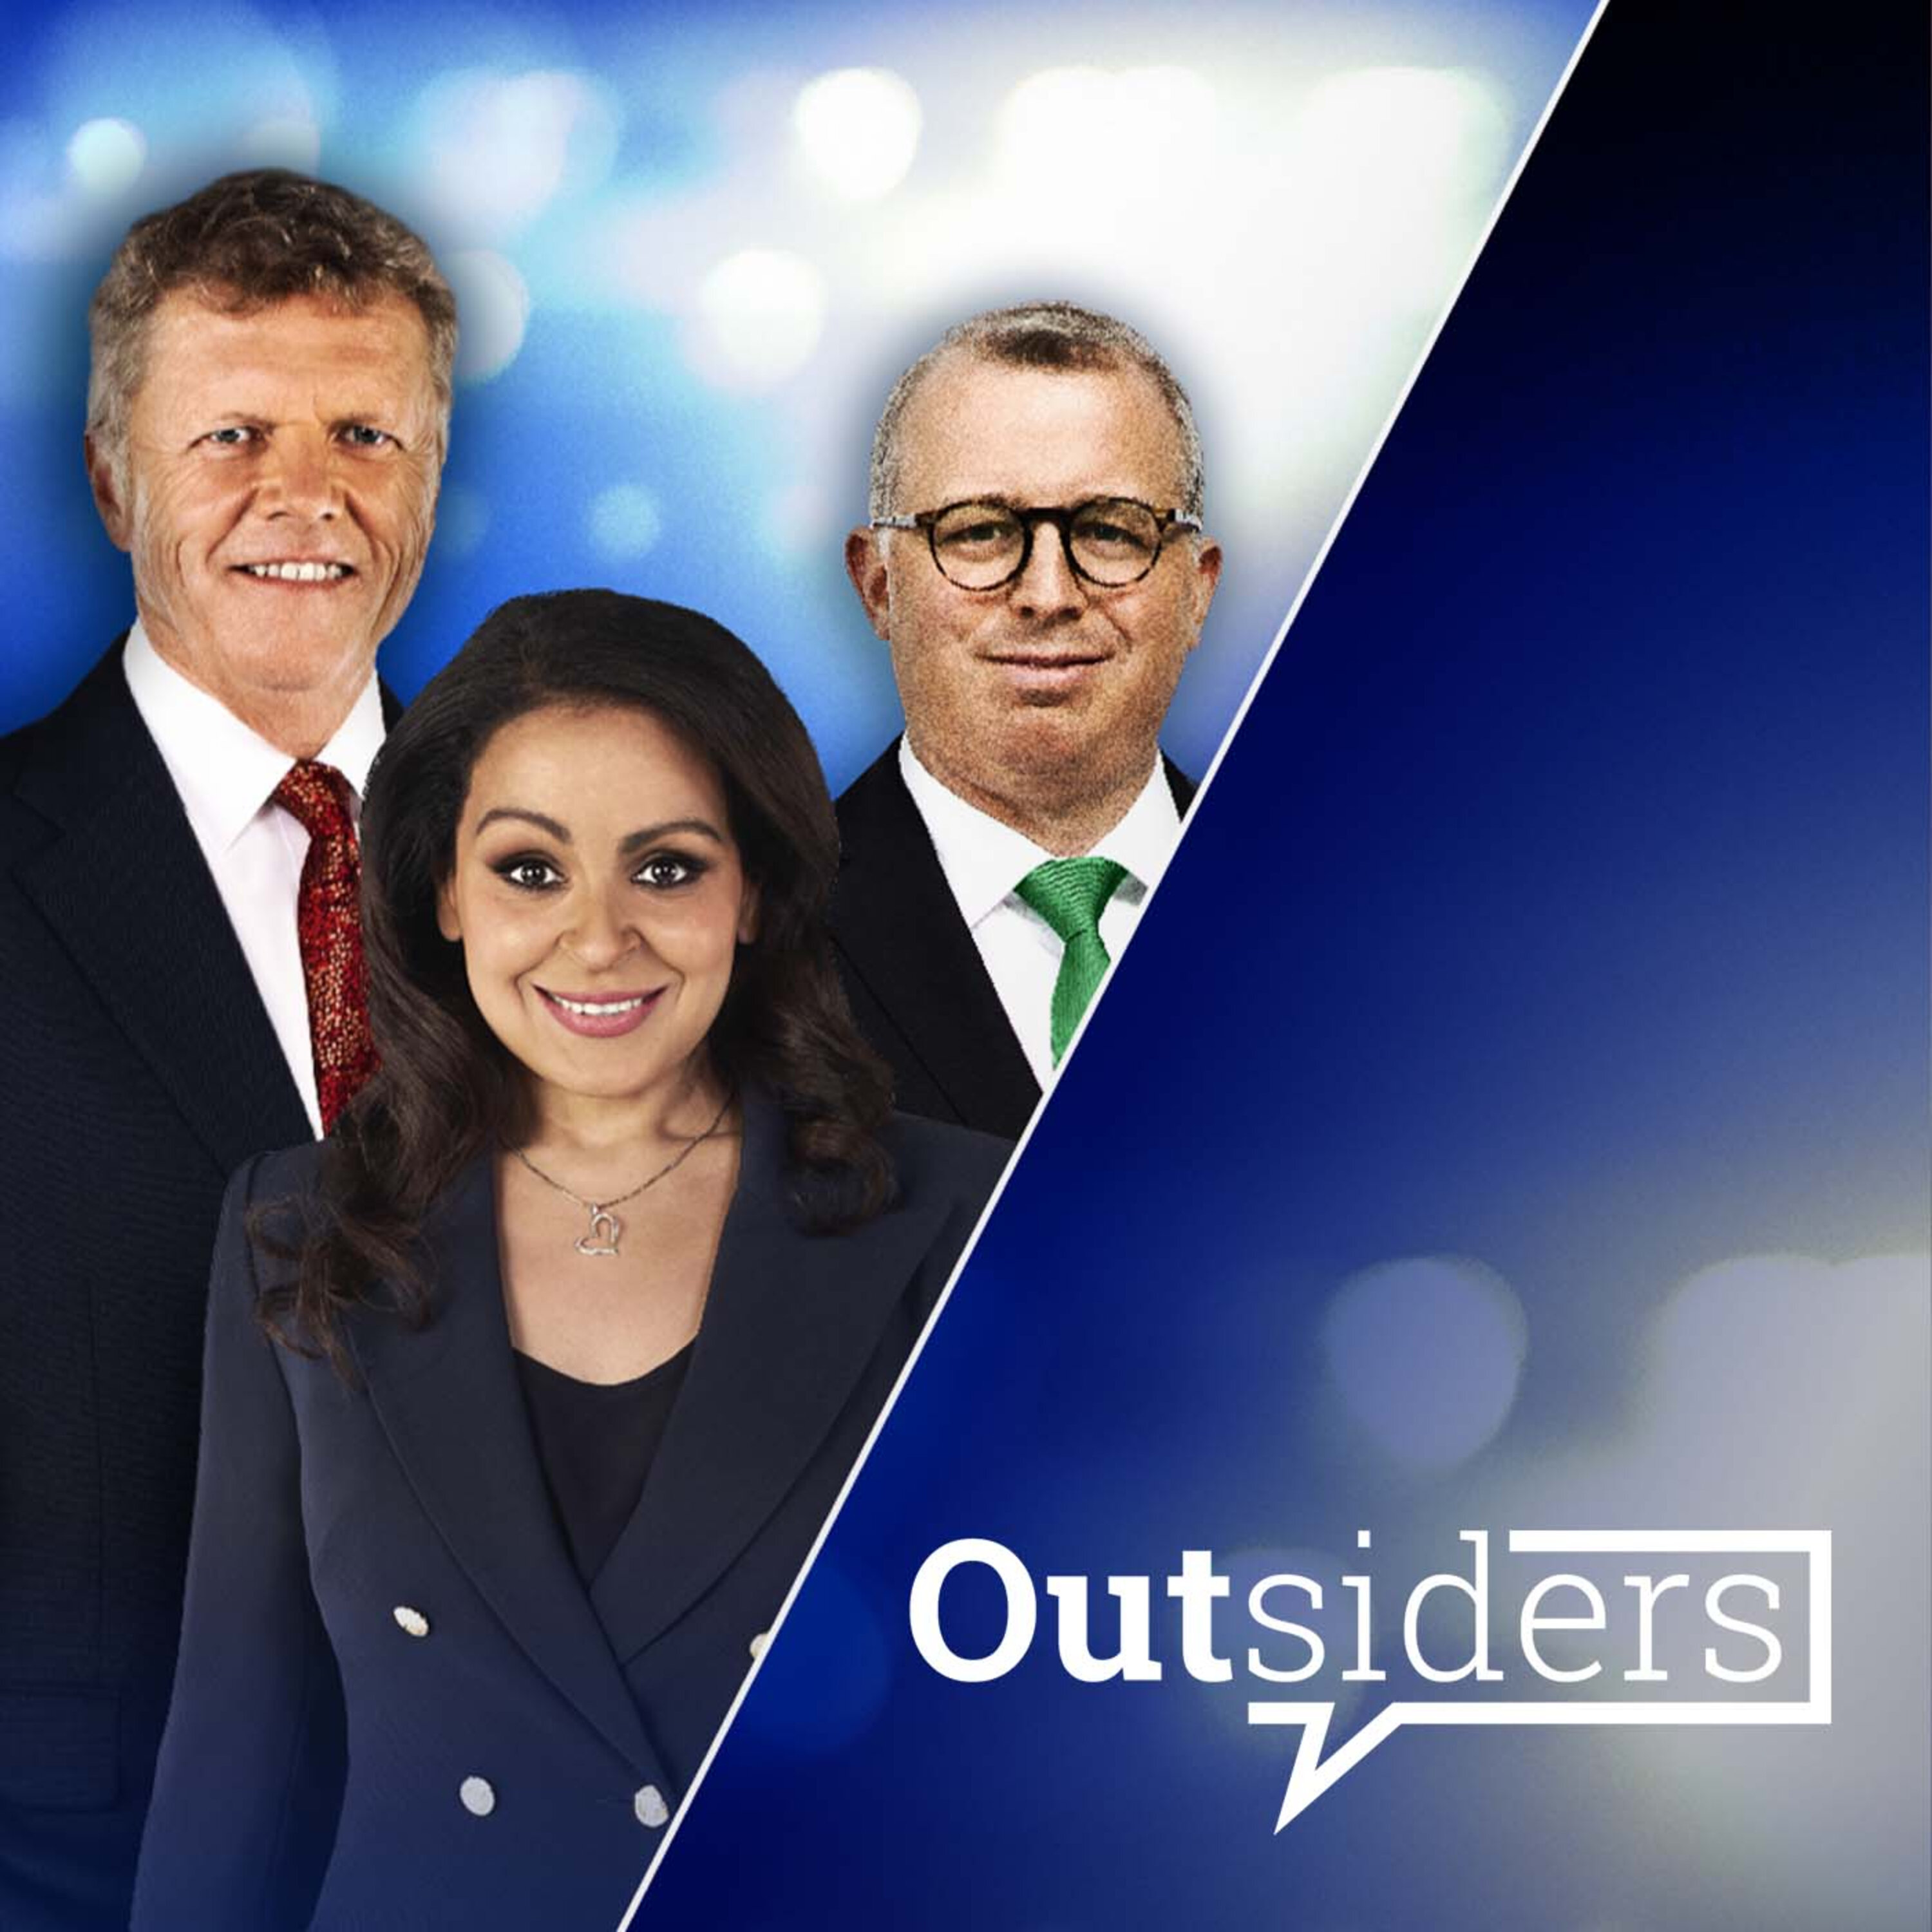 Outsiders, Sunday 18th October